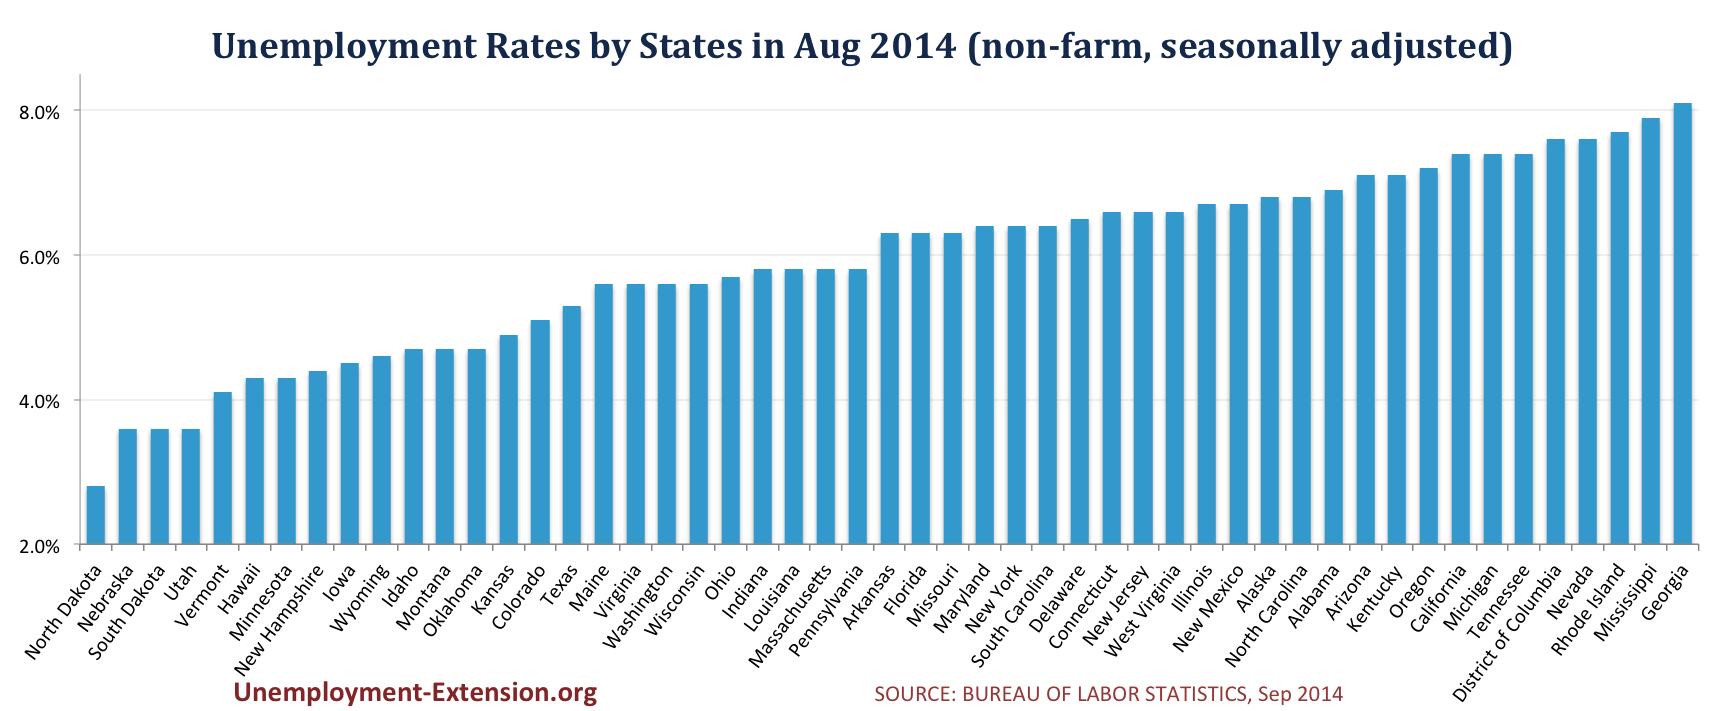 Unemployment Rates by State in August 2014